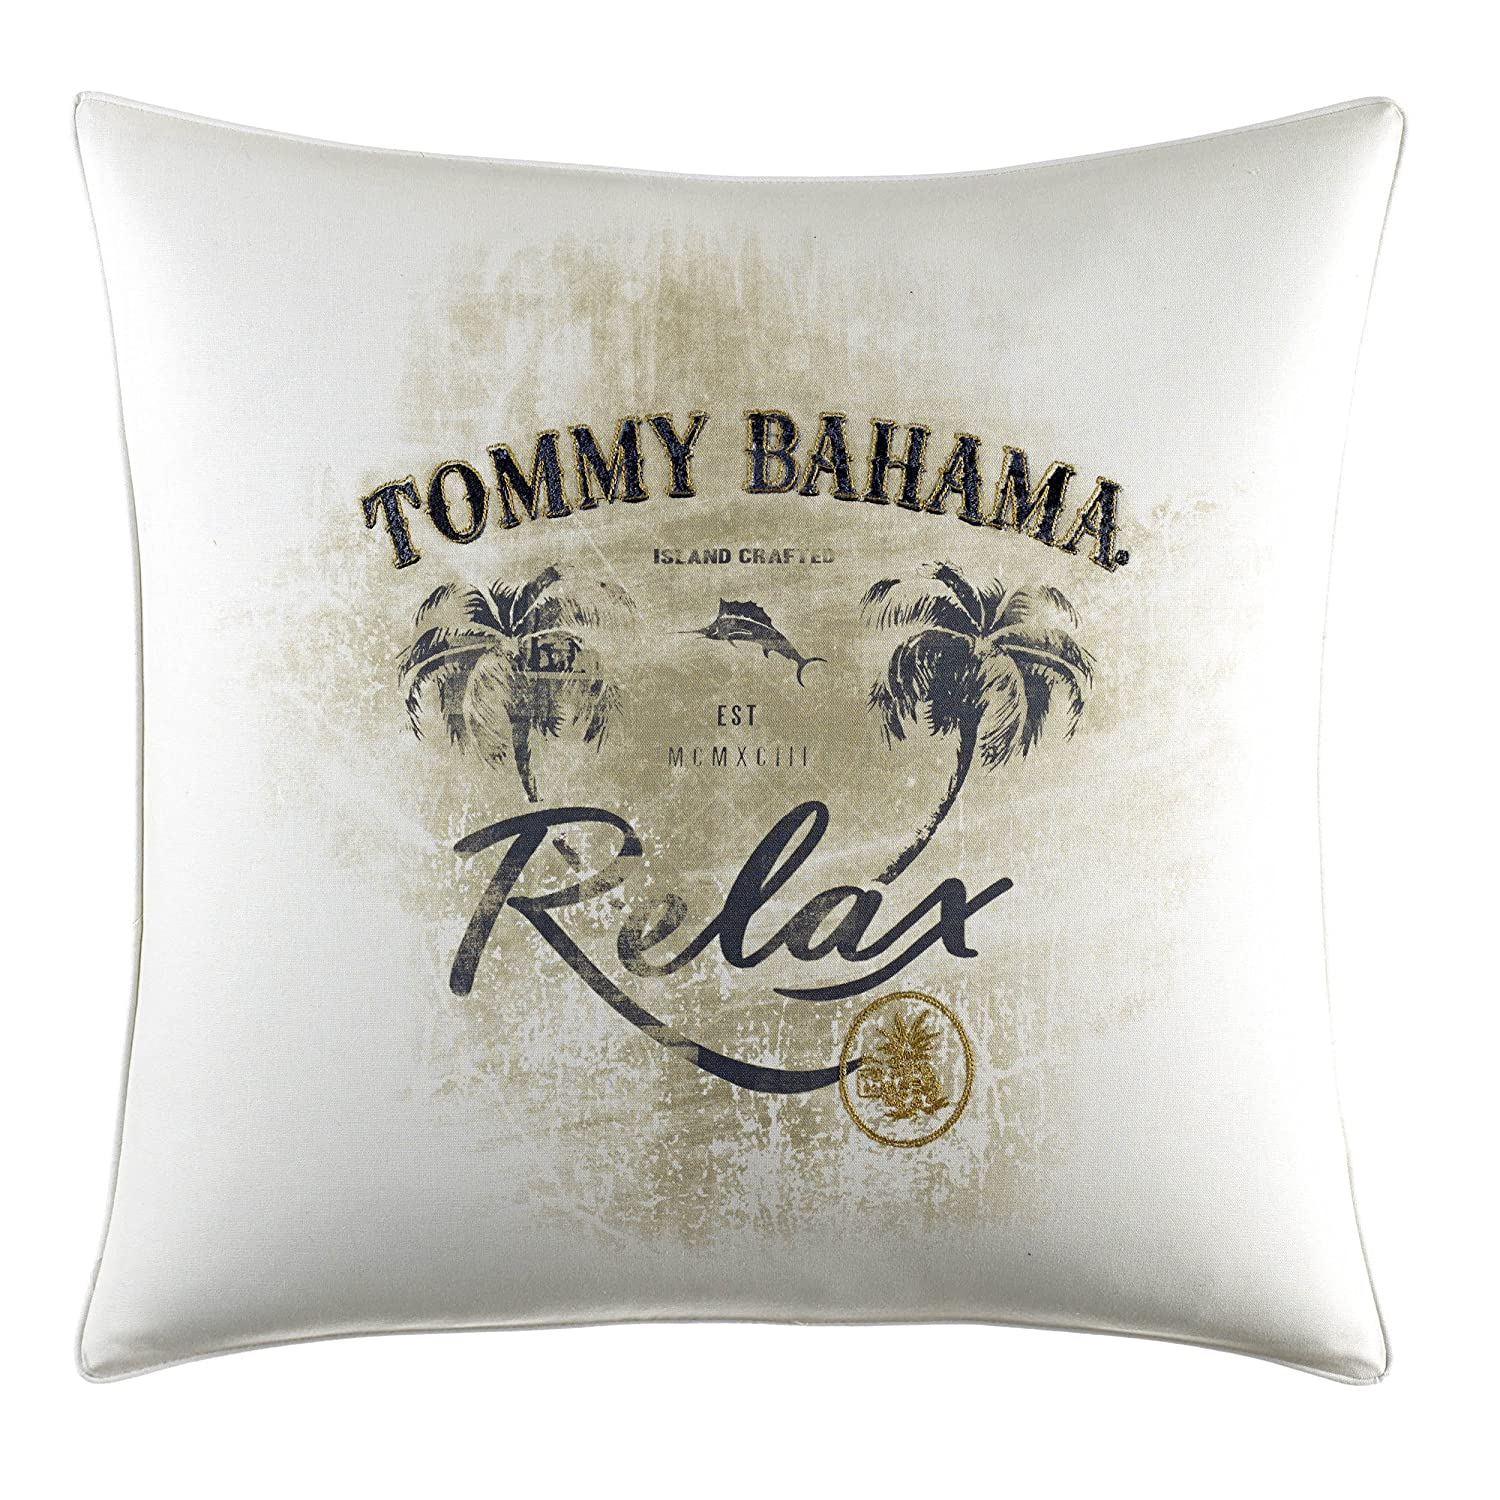 Tommy Bahama Palms Away Relax Print Throw Pillow, 20x20, Light Beige